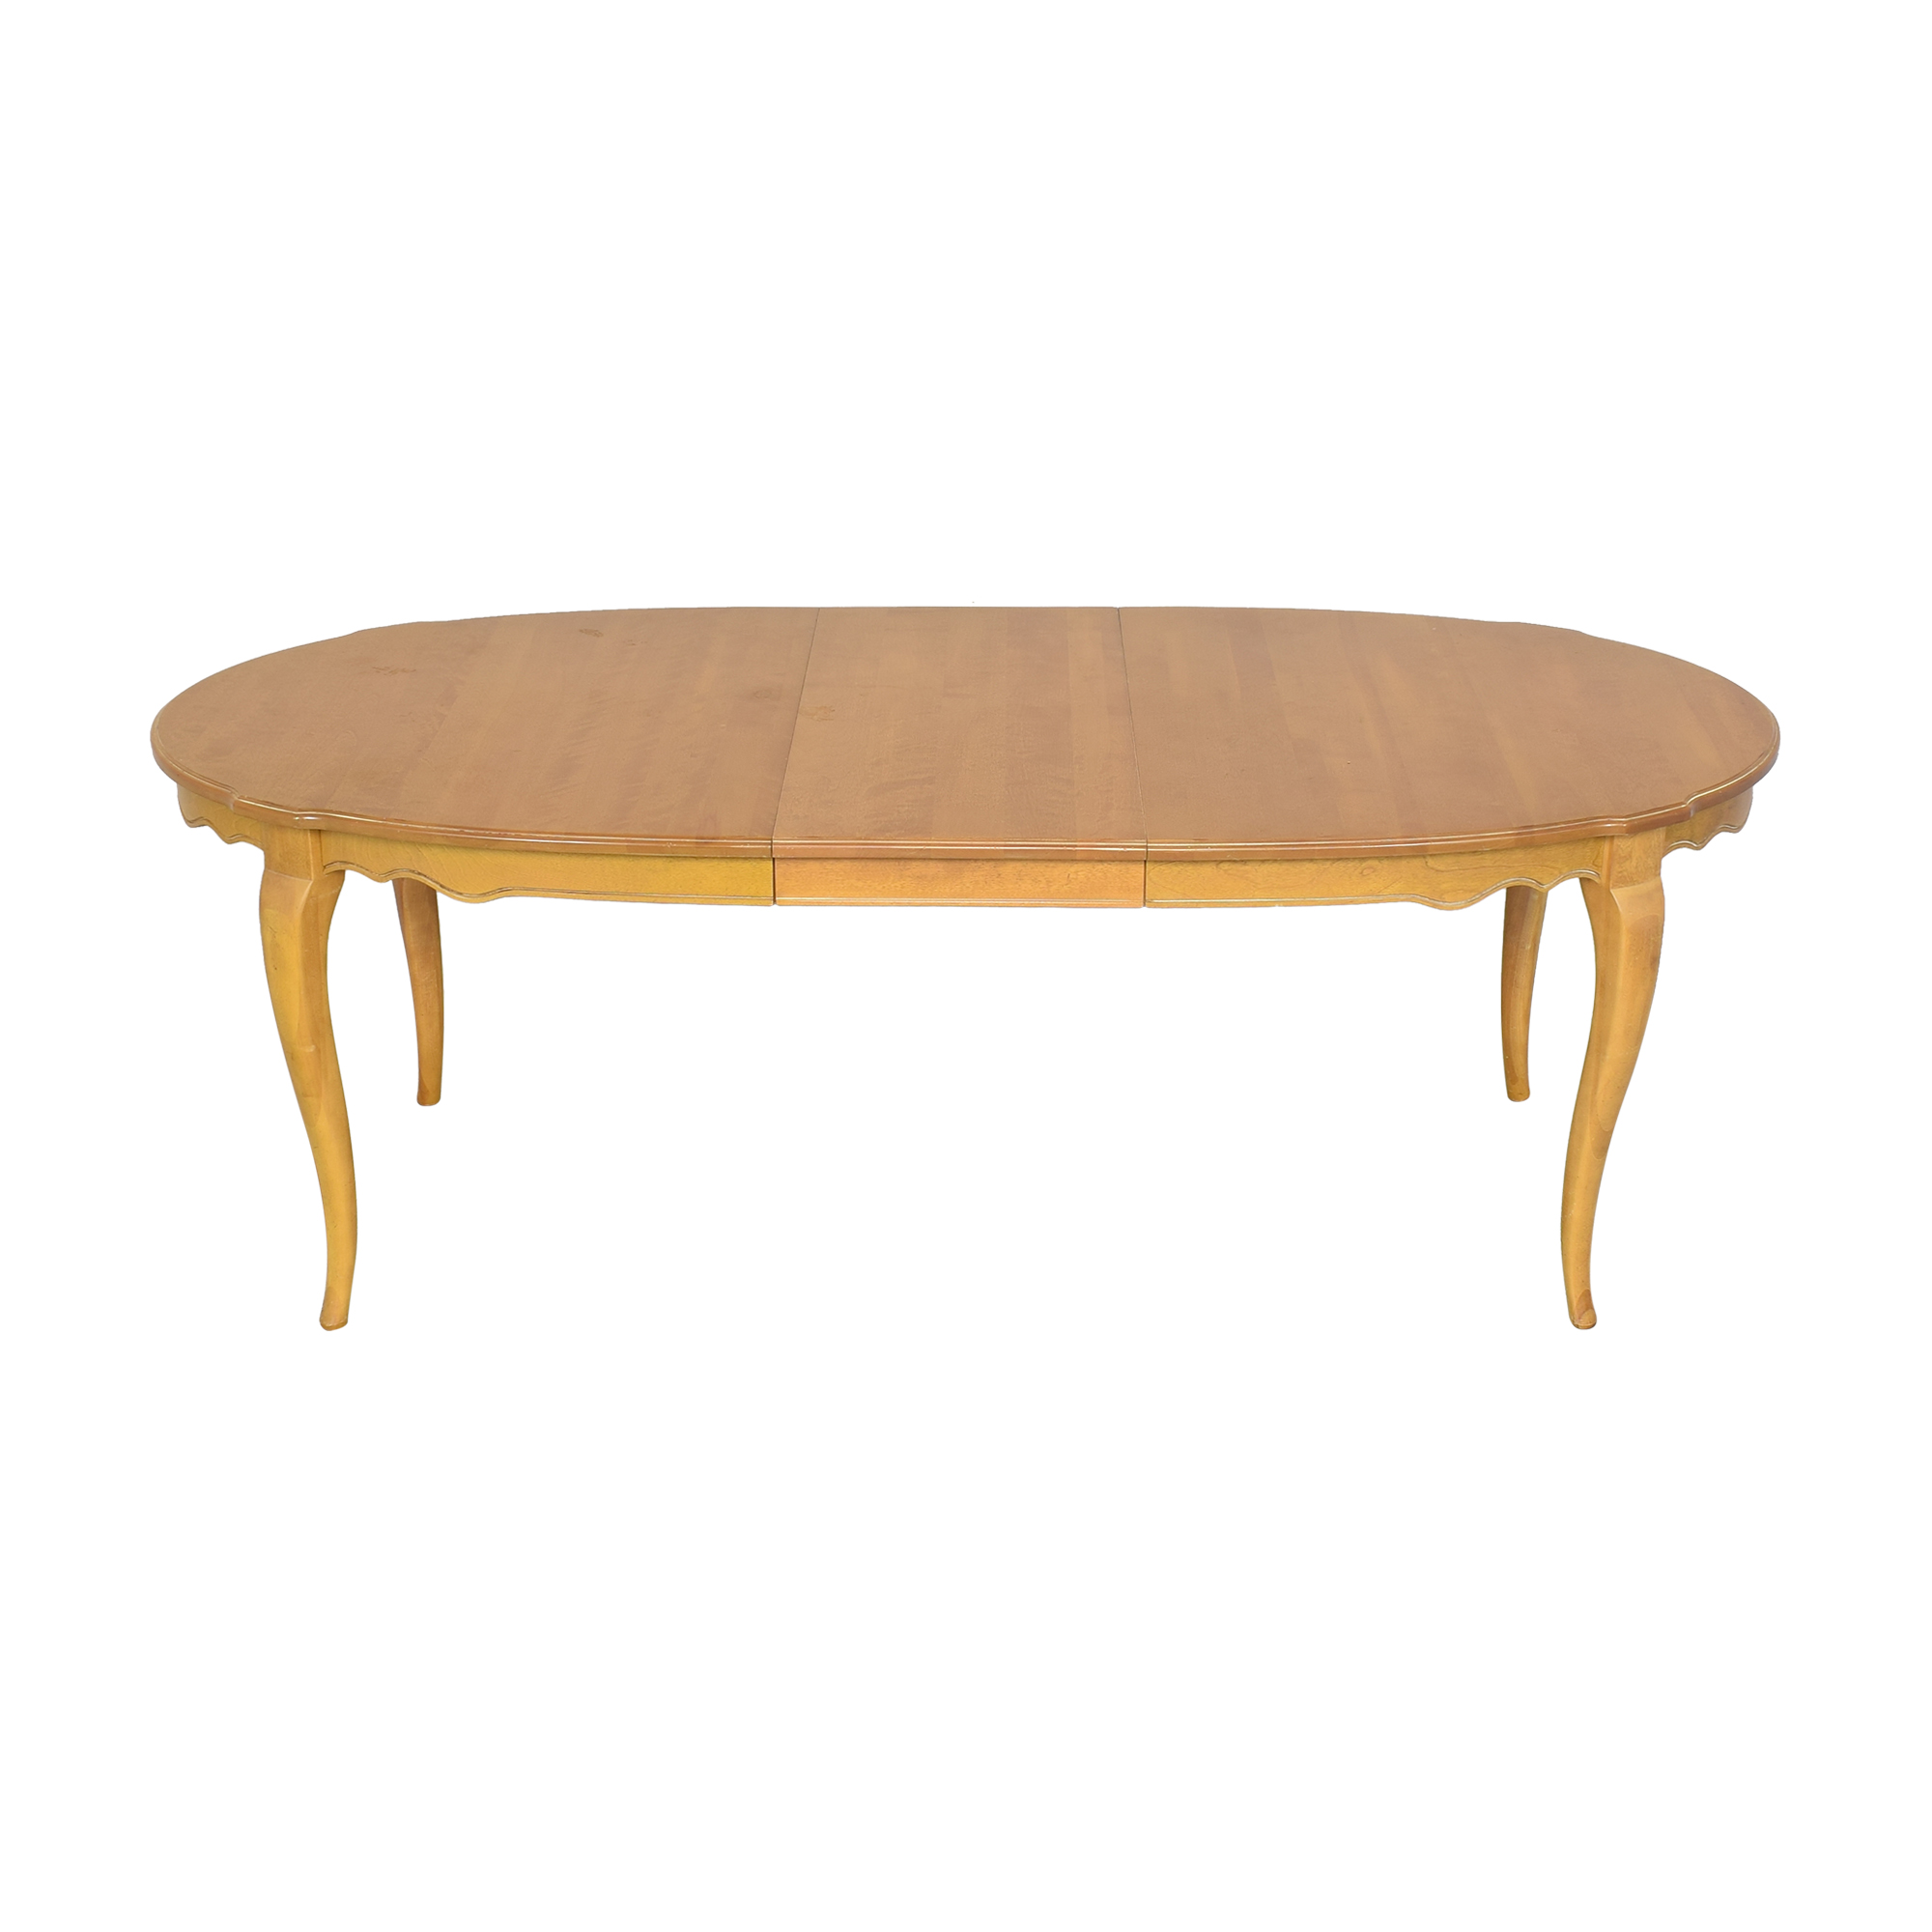 Ethan Allen Ethan Allen Country French Oval Extendable Dining Table used